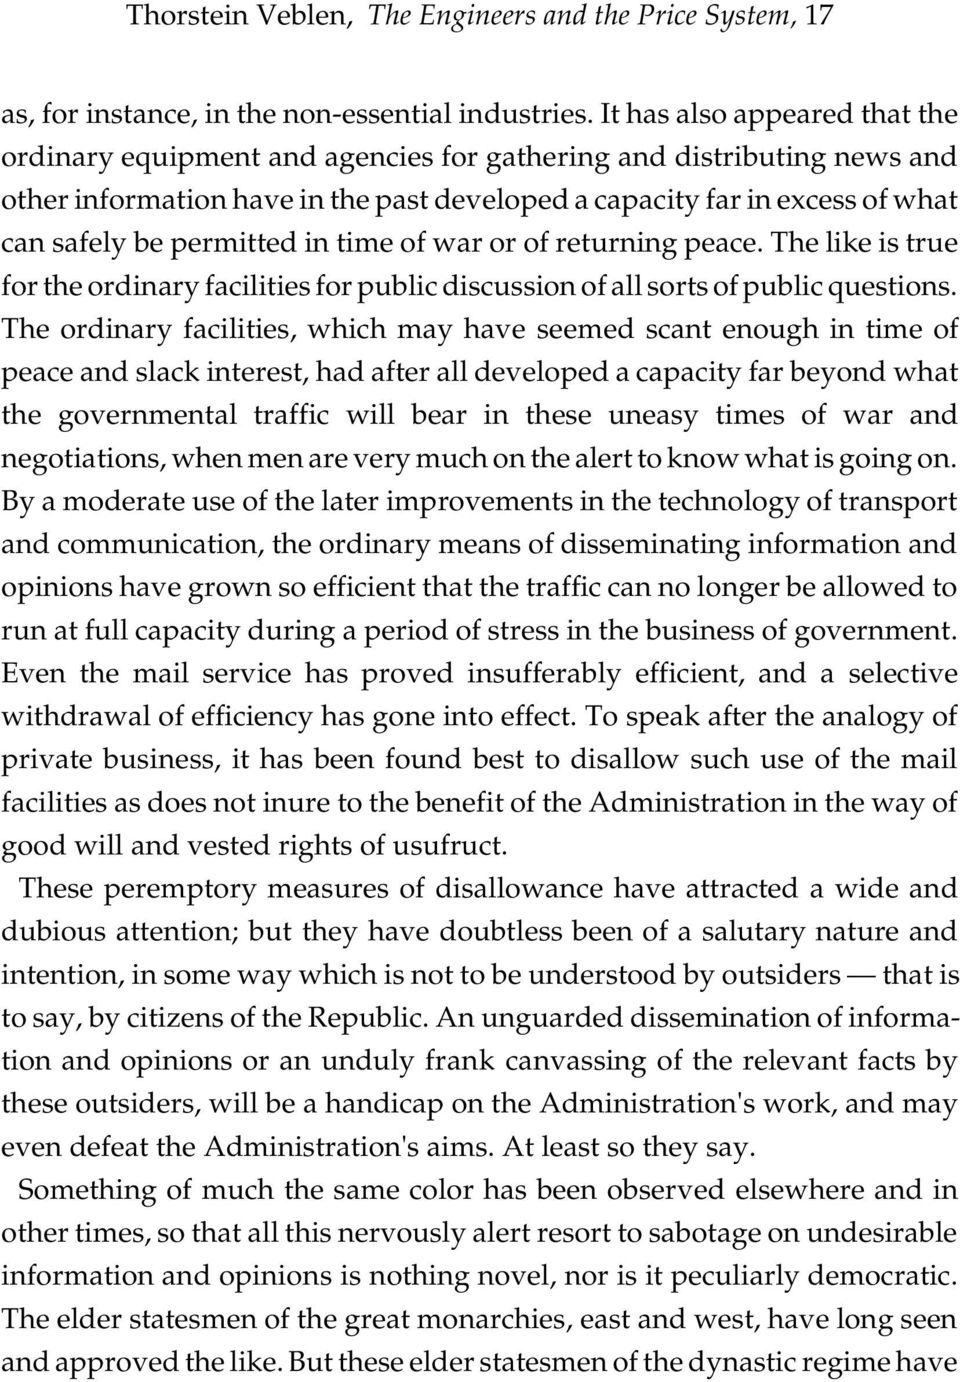 permitted in time of war or of returning peace. The like is true for the ordinary facilities for public discussion of all sorts of public questions.